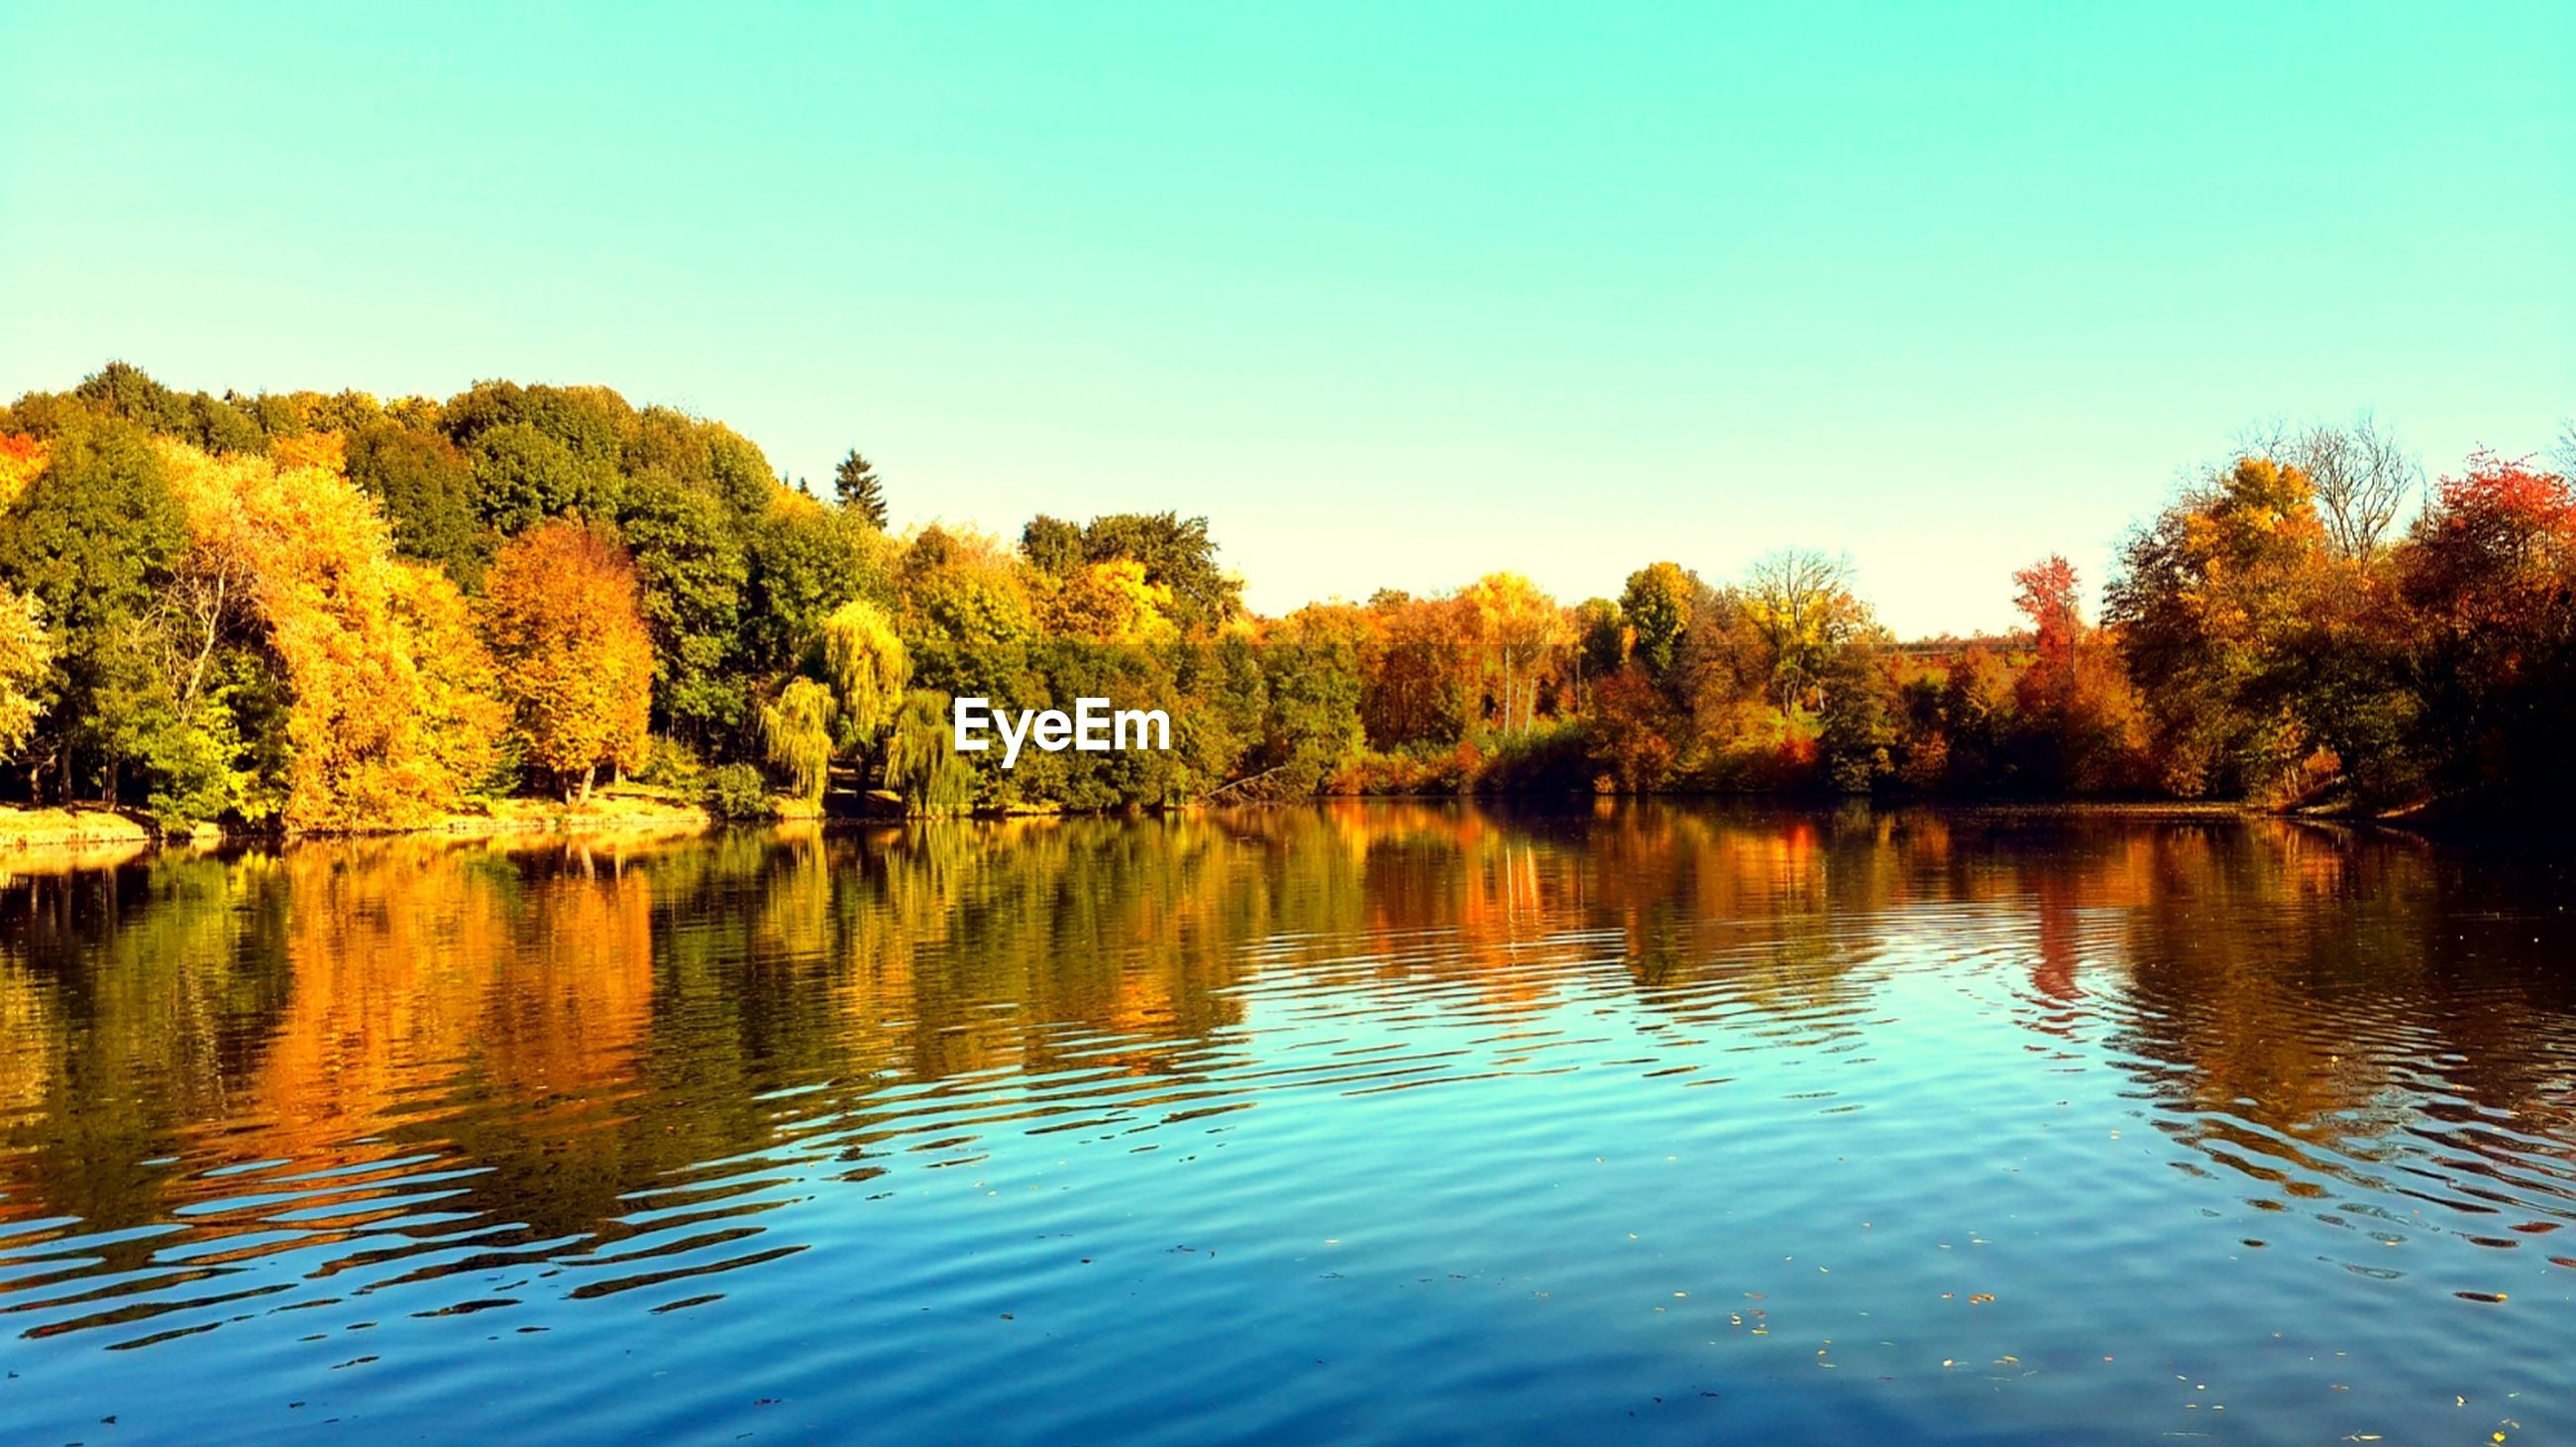 tree, clear sky, water, reflection, lake, tranquility, tranquil scene, waterfront, autumn, beauty in nature, scenics, change, nature, blue, copy space, idyllic, growth, day, outdoors, calm